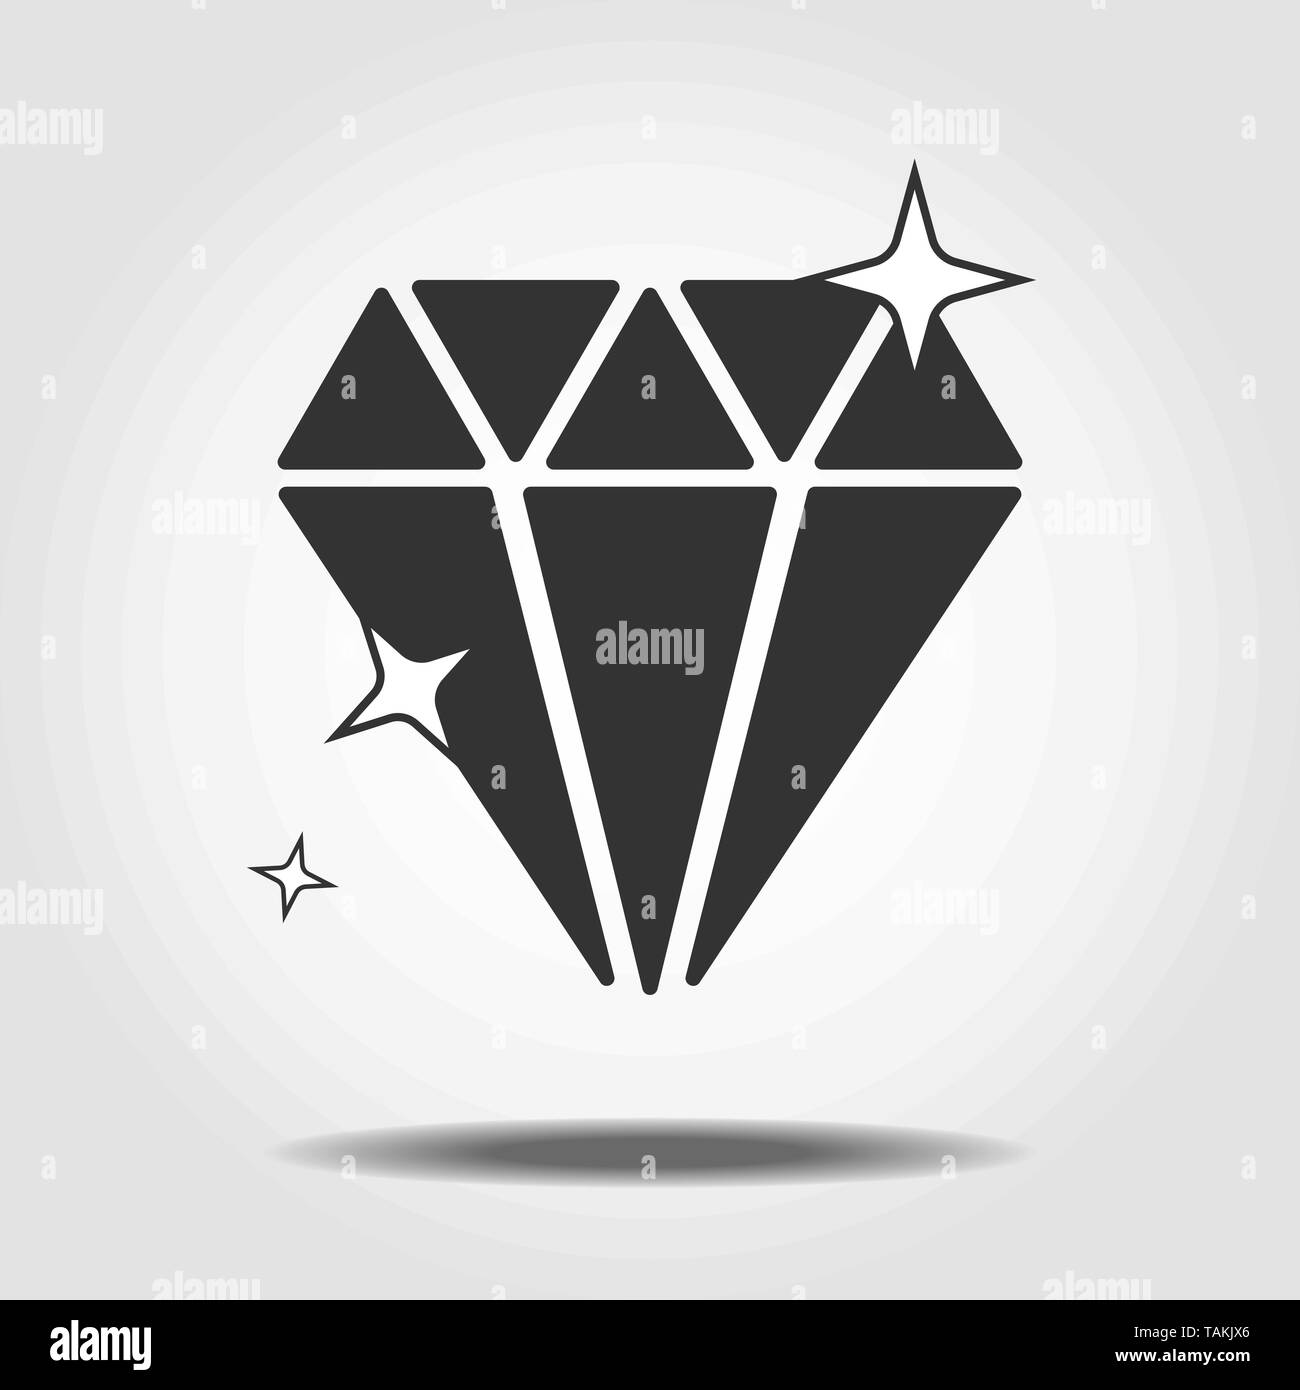 Isolated mineralogy icon symbol on clean background. Vector diamond element in trendy style eps 10 - Stock Image